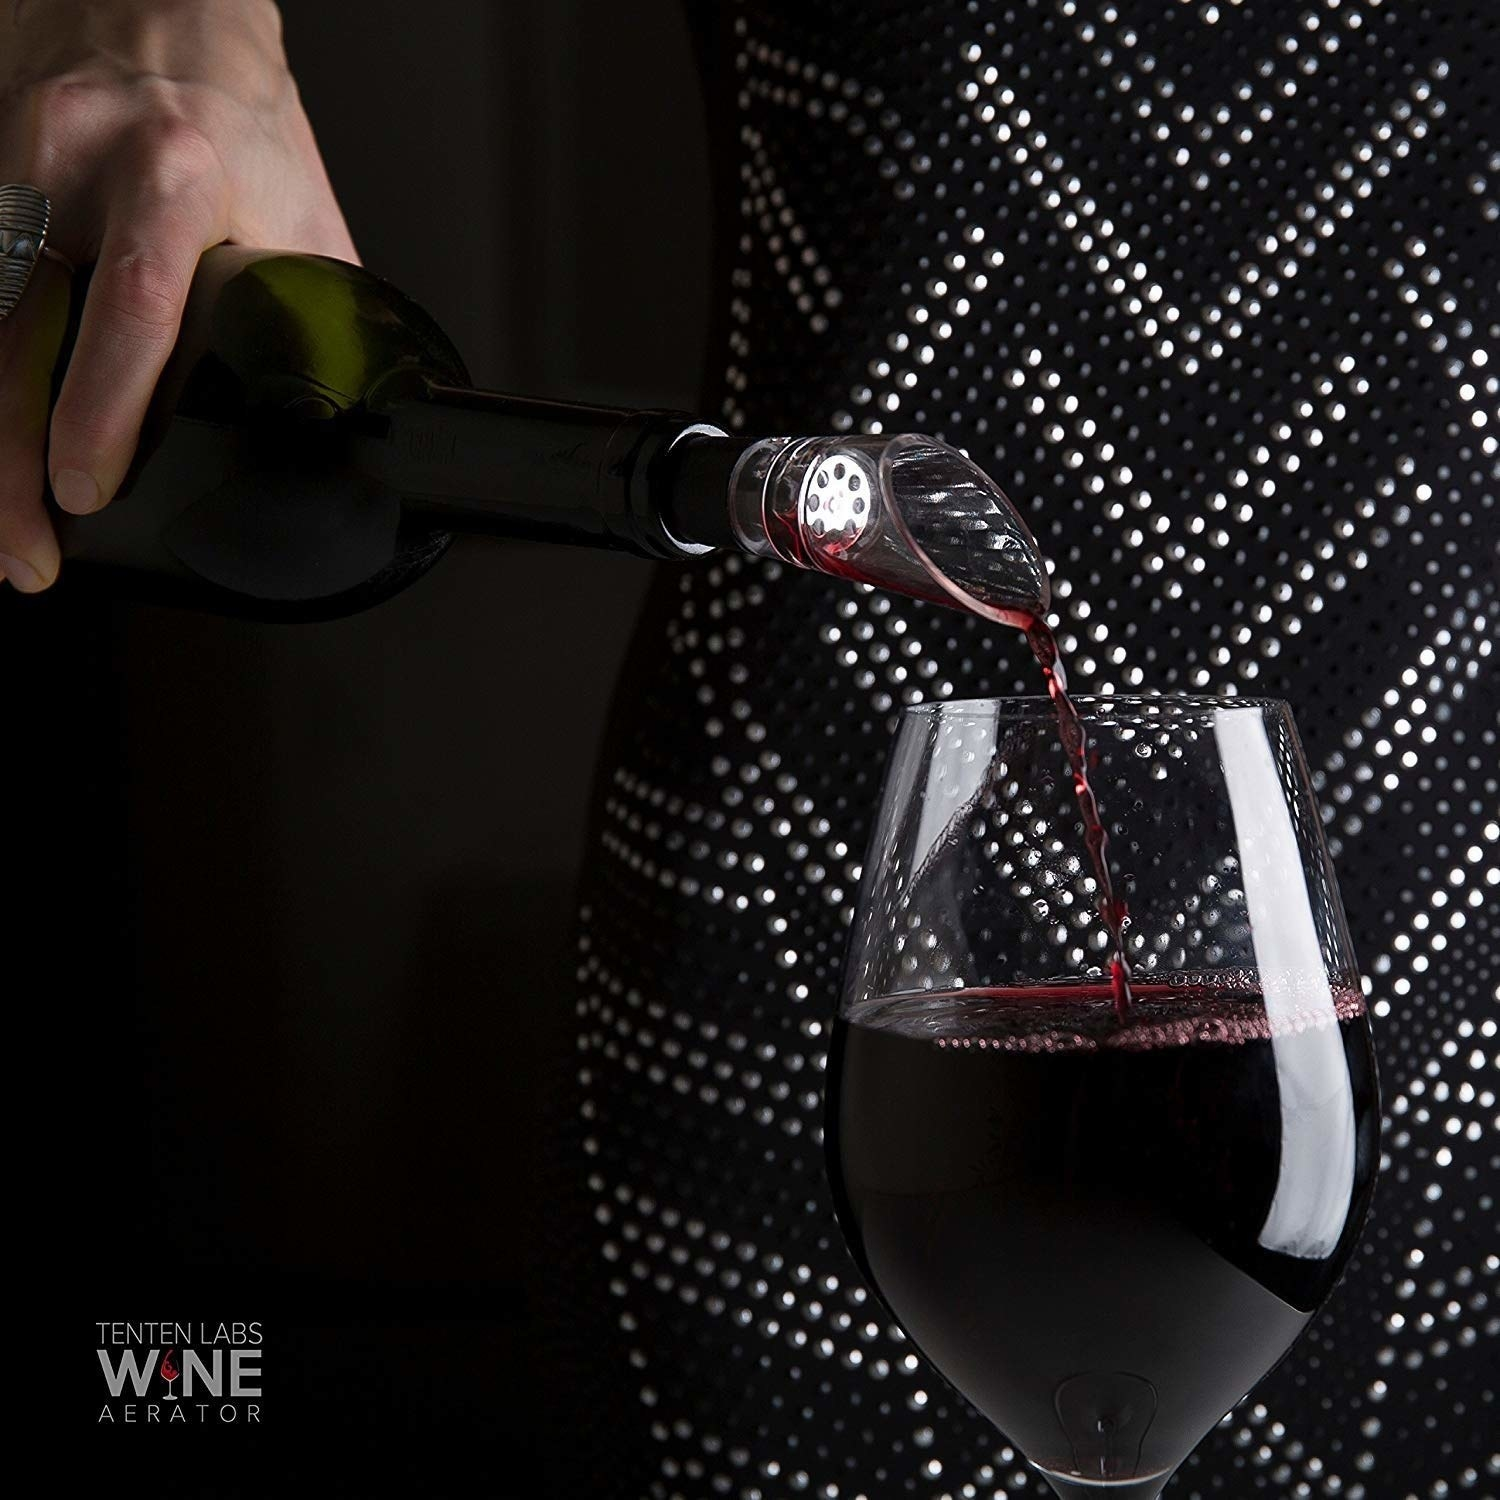 hand pouring wine into a glass through aerator spout on wine bottle